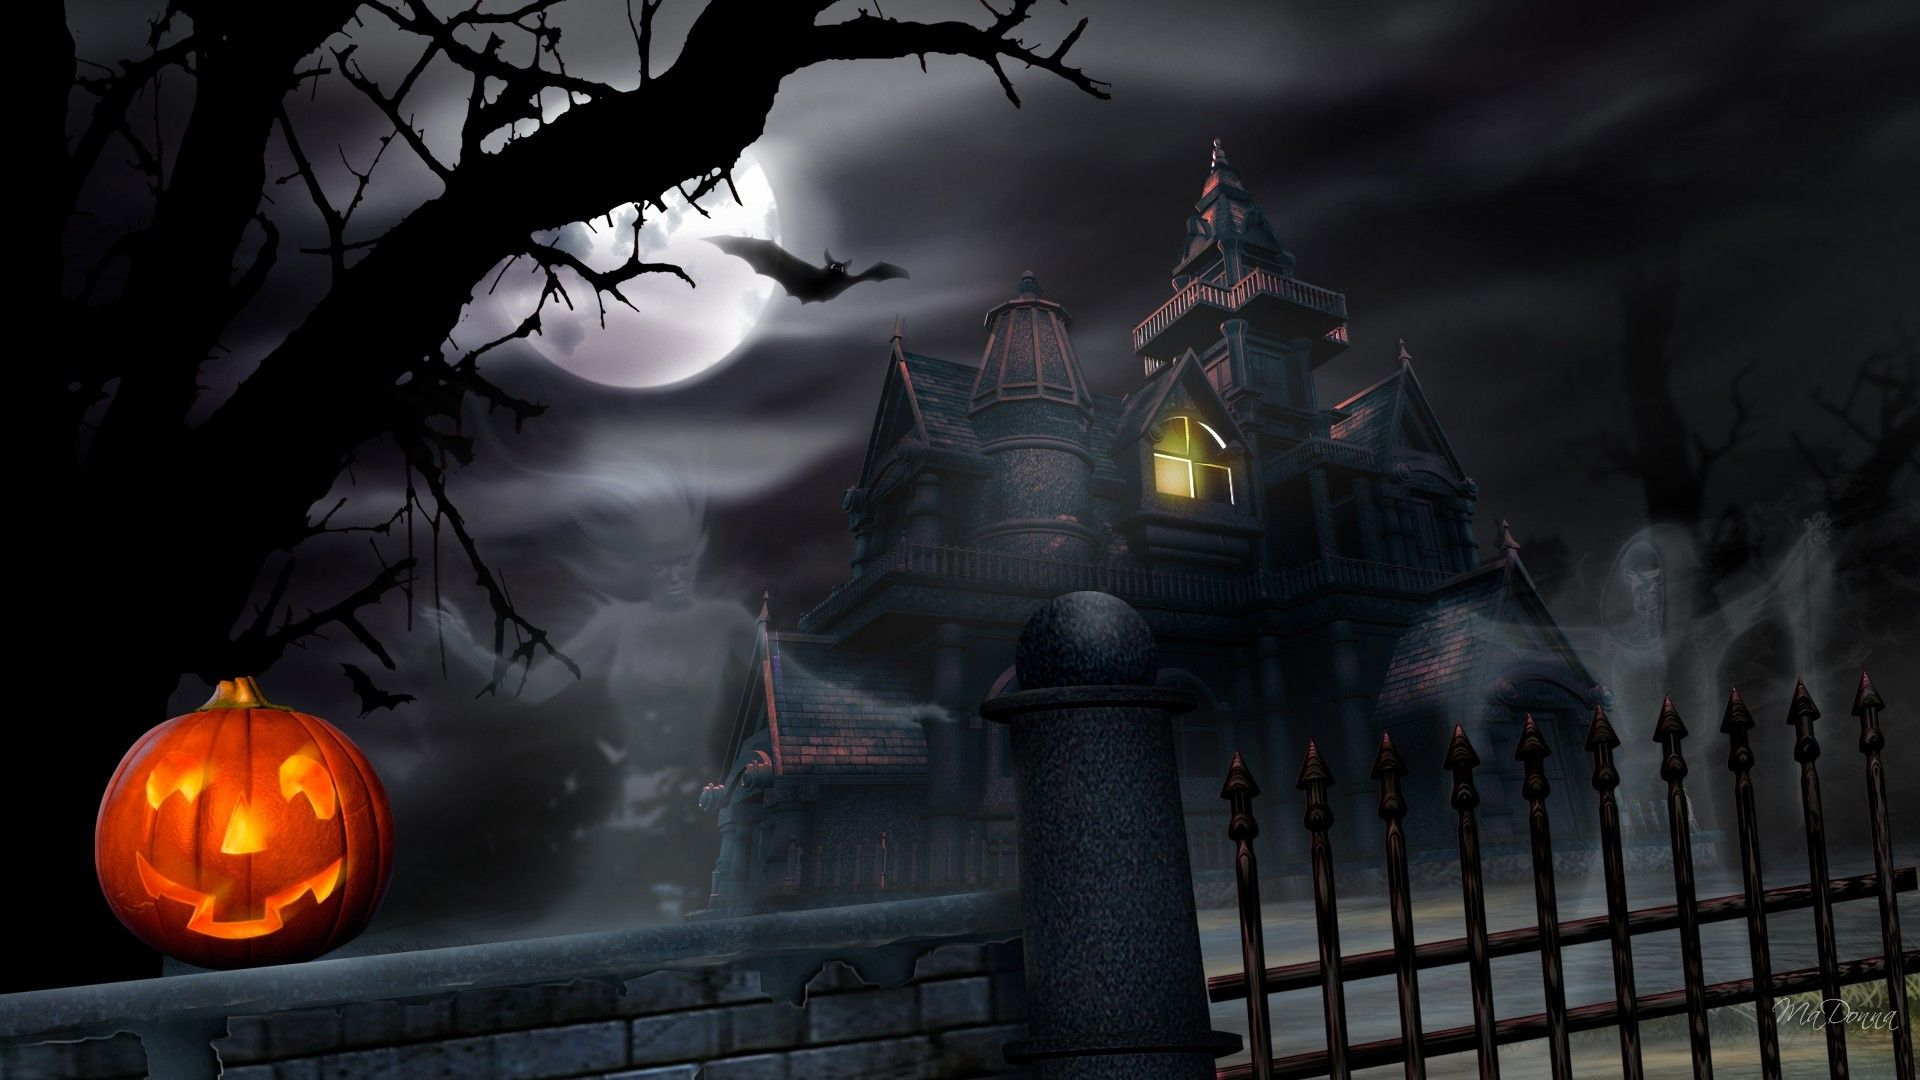 Free Halloween Wallpaper Desktop Wallpaper Hd 2005 Free Halloween Wallpaper Halloween Desktop Wallpaper Halloween Backgrounds